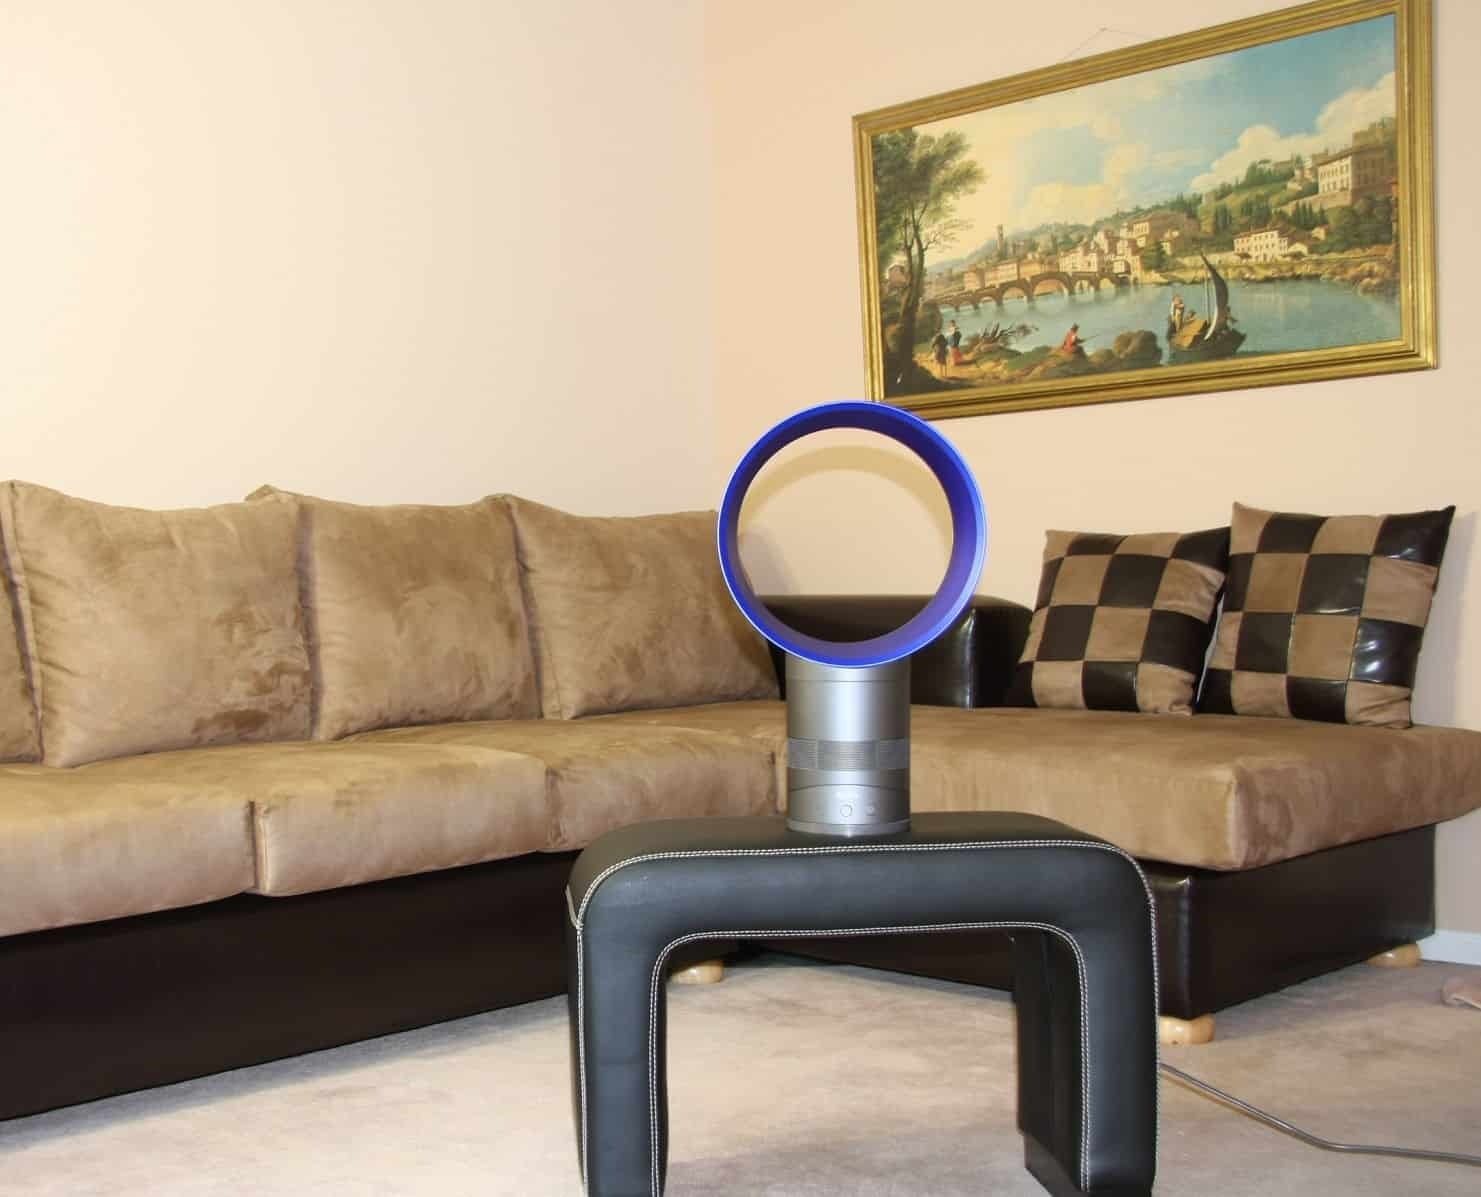 Dyson-Air-Multiplier-Fan-Review